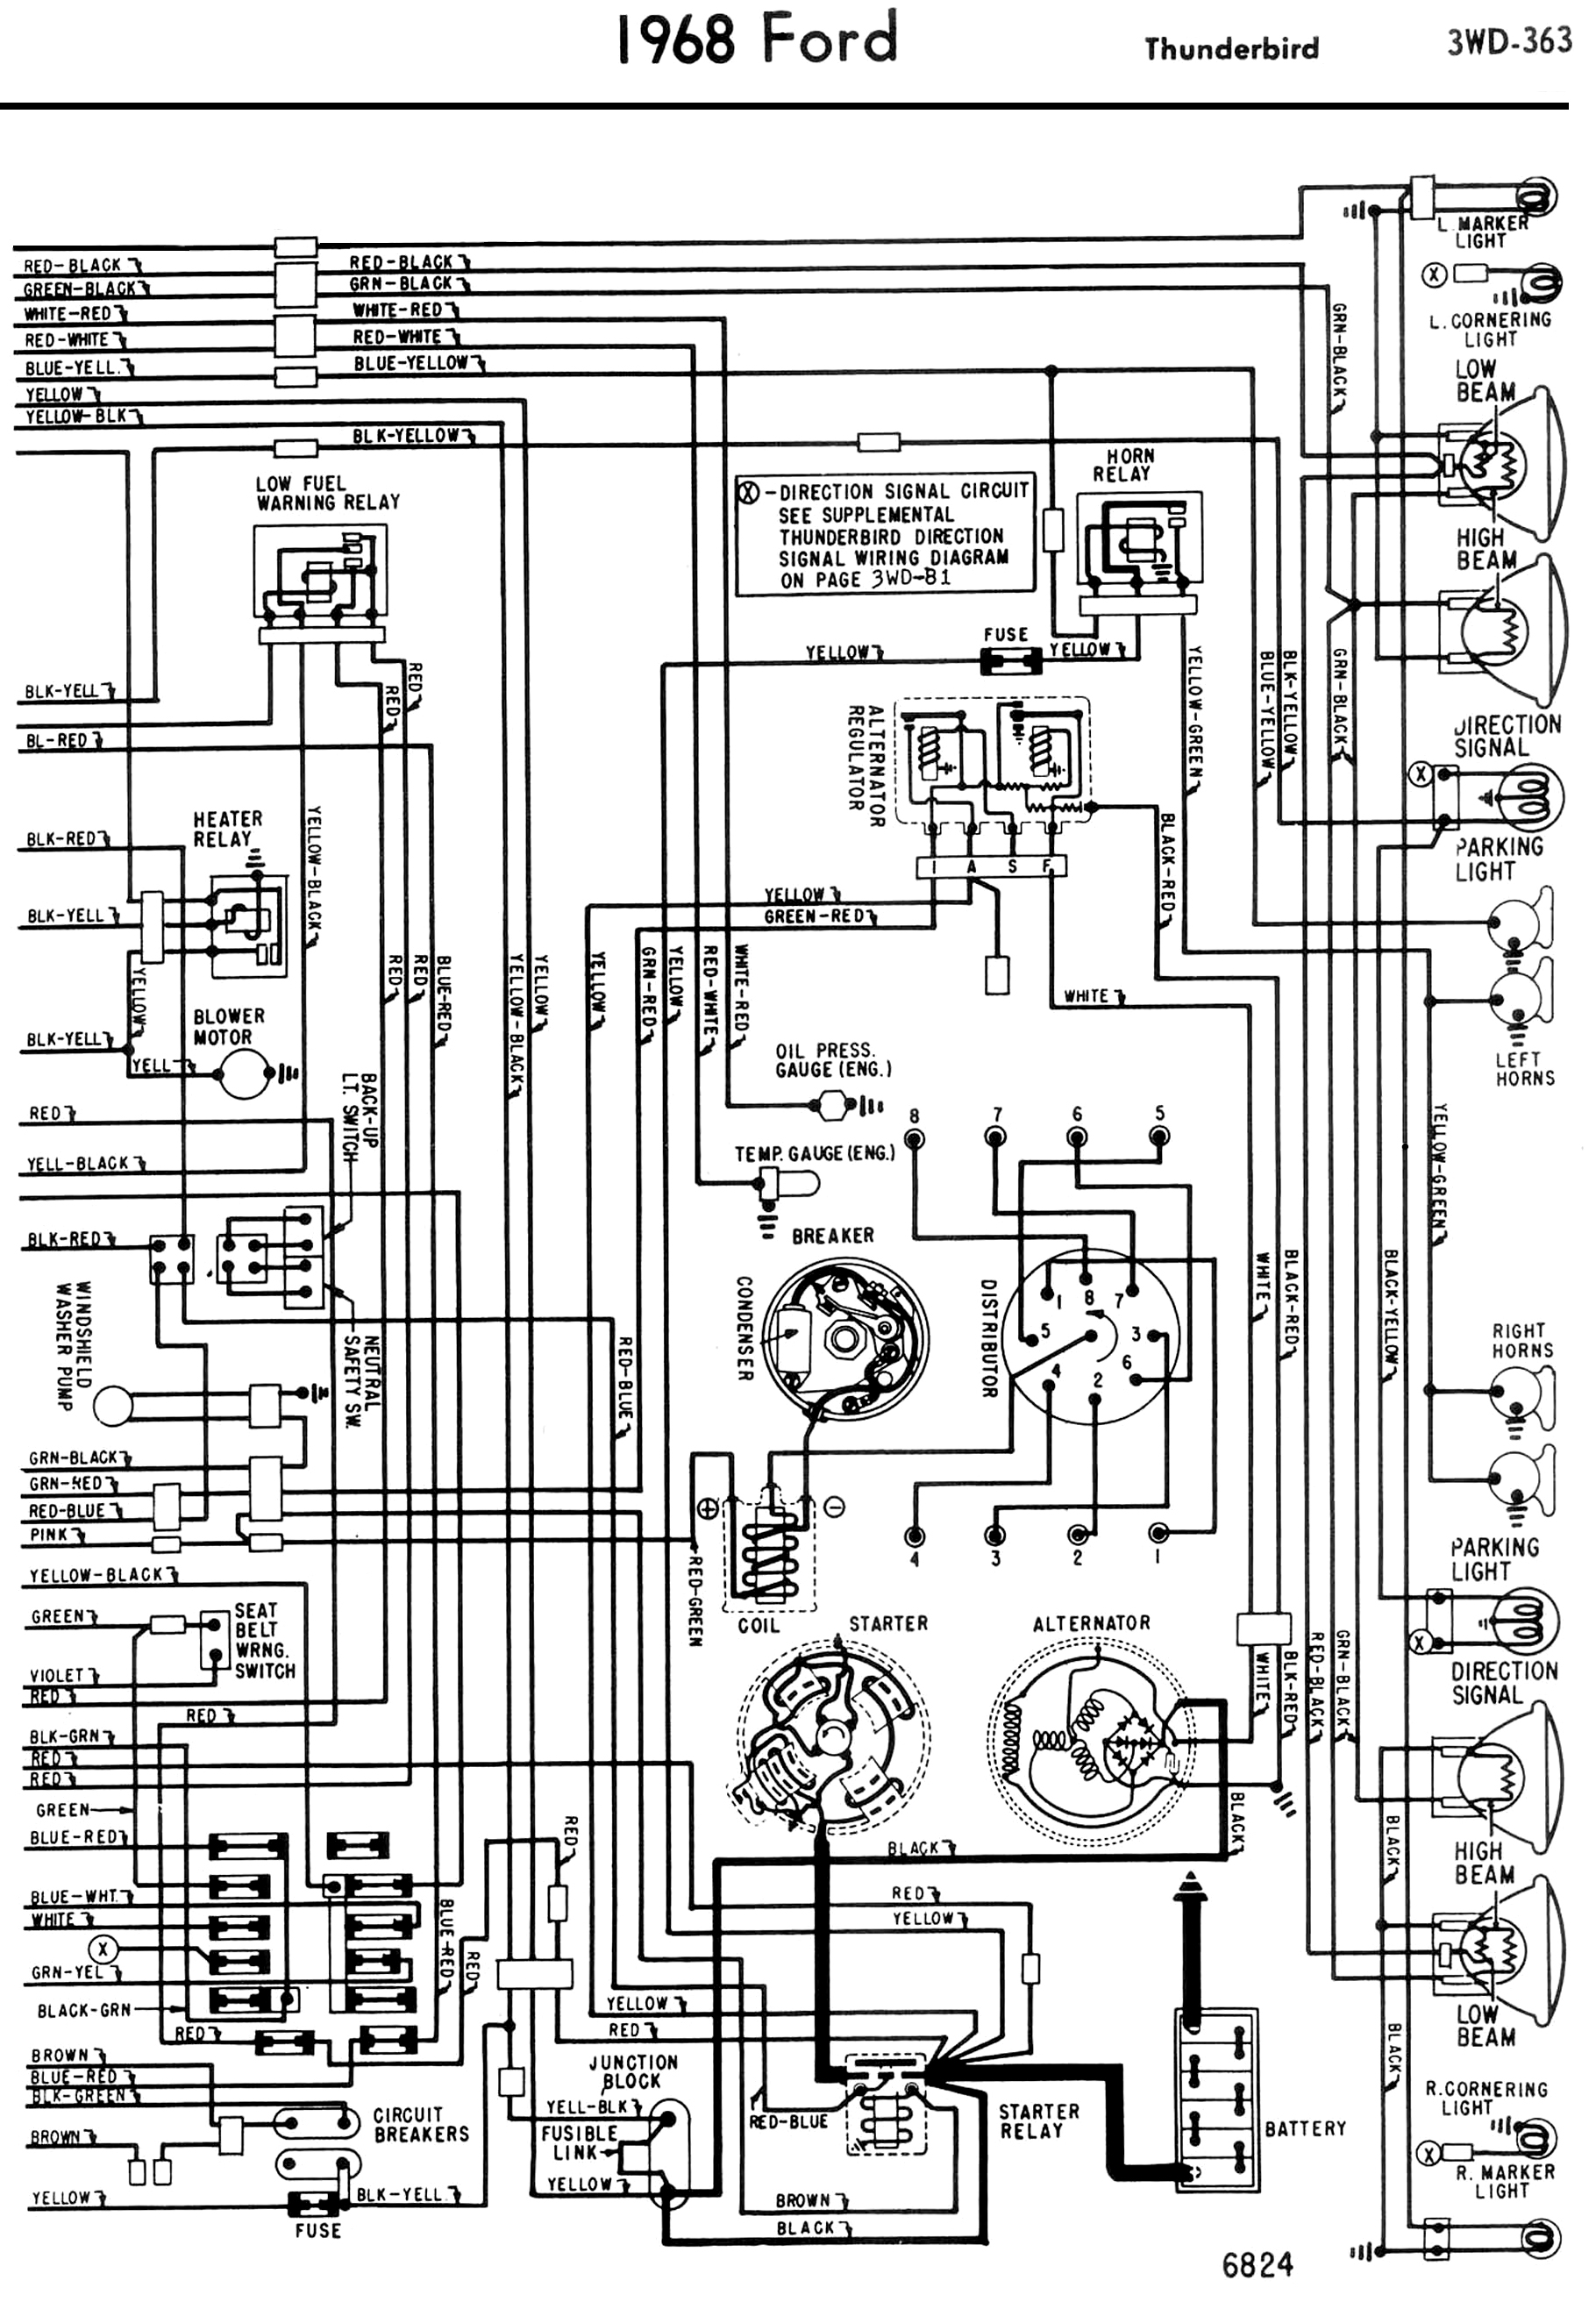 hight resolution of wiring diagram for 1986 ford thunderbird wiring diagram expert 1965 thunderbird wiring diagram 1986 ford thunderbird